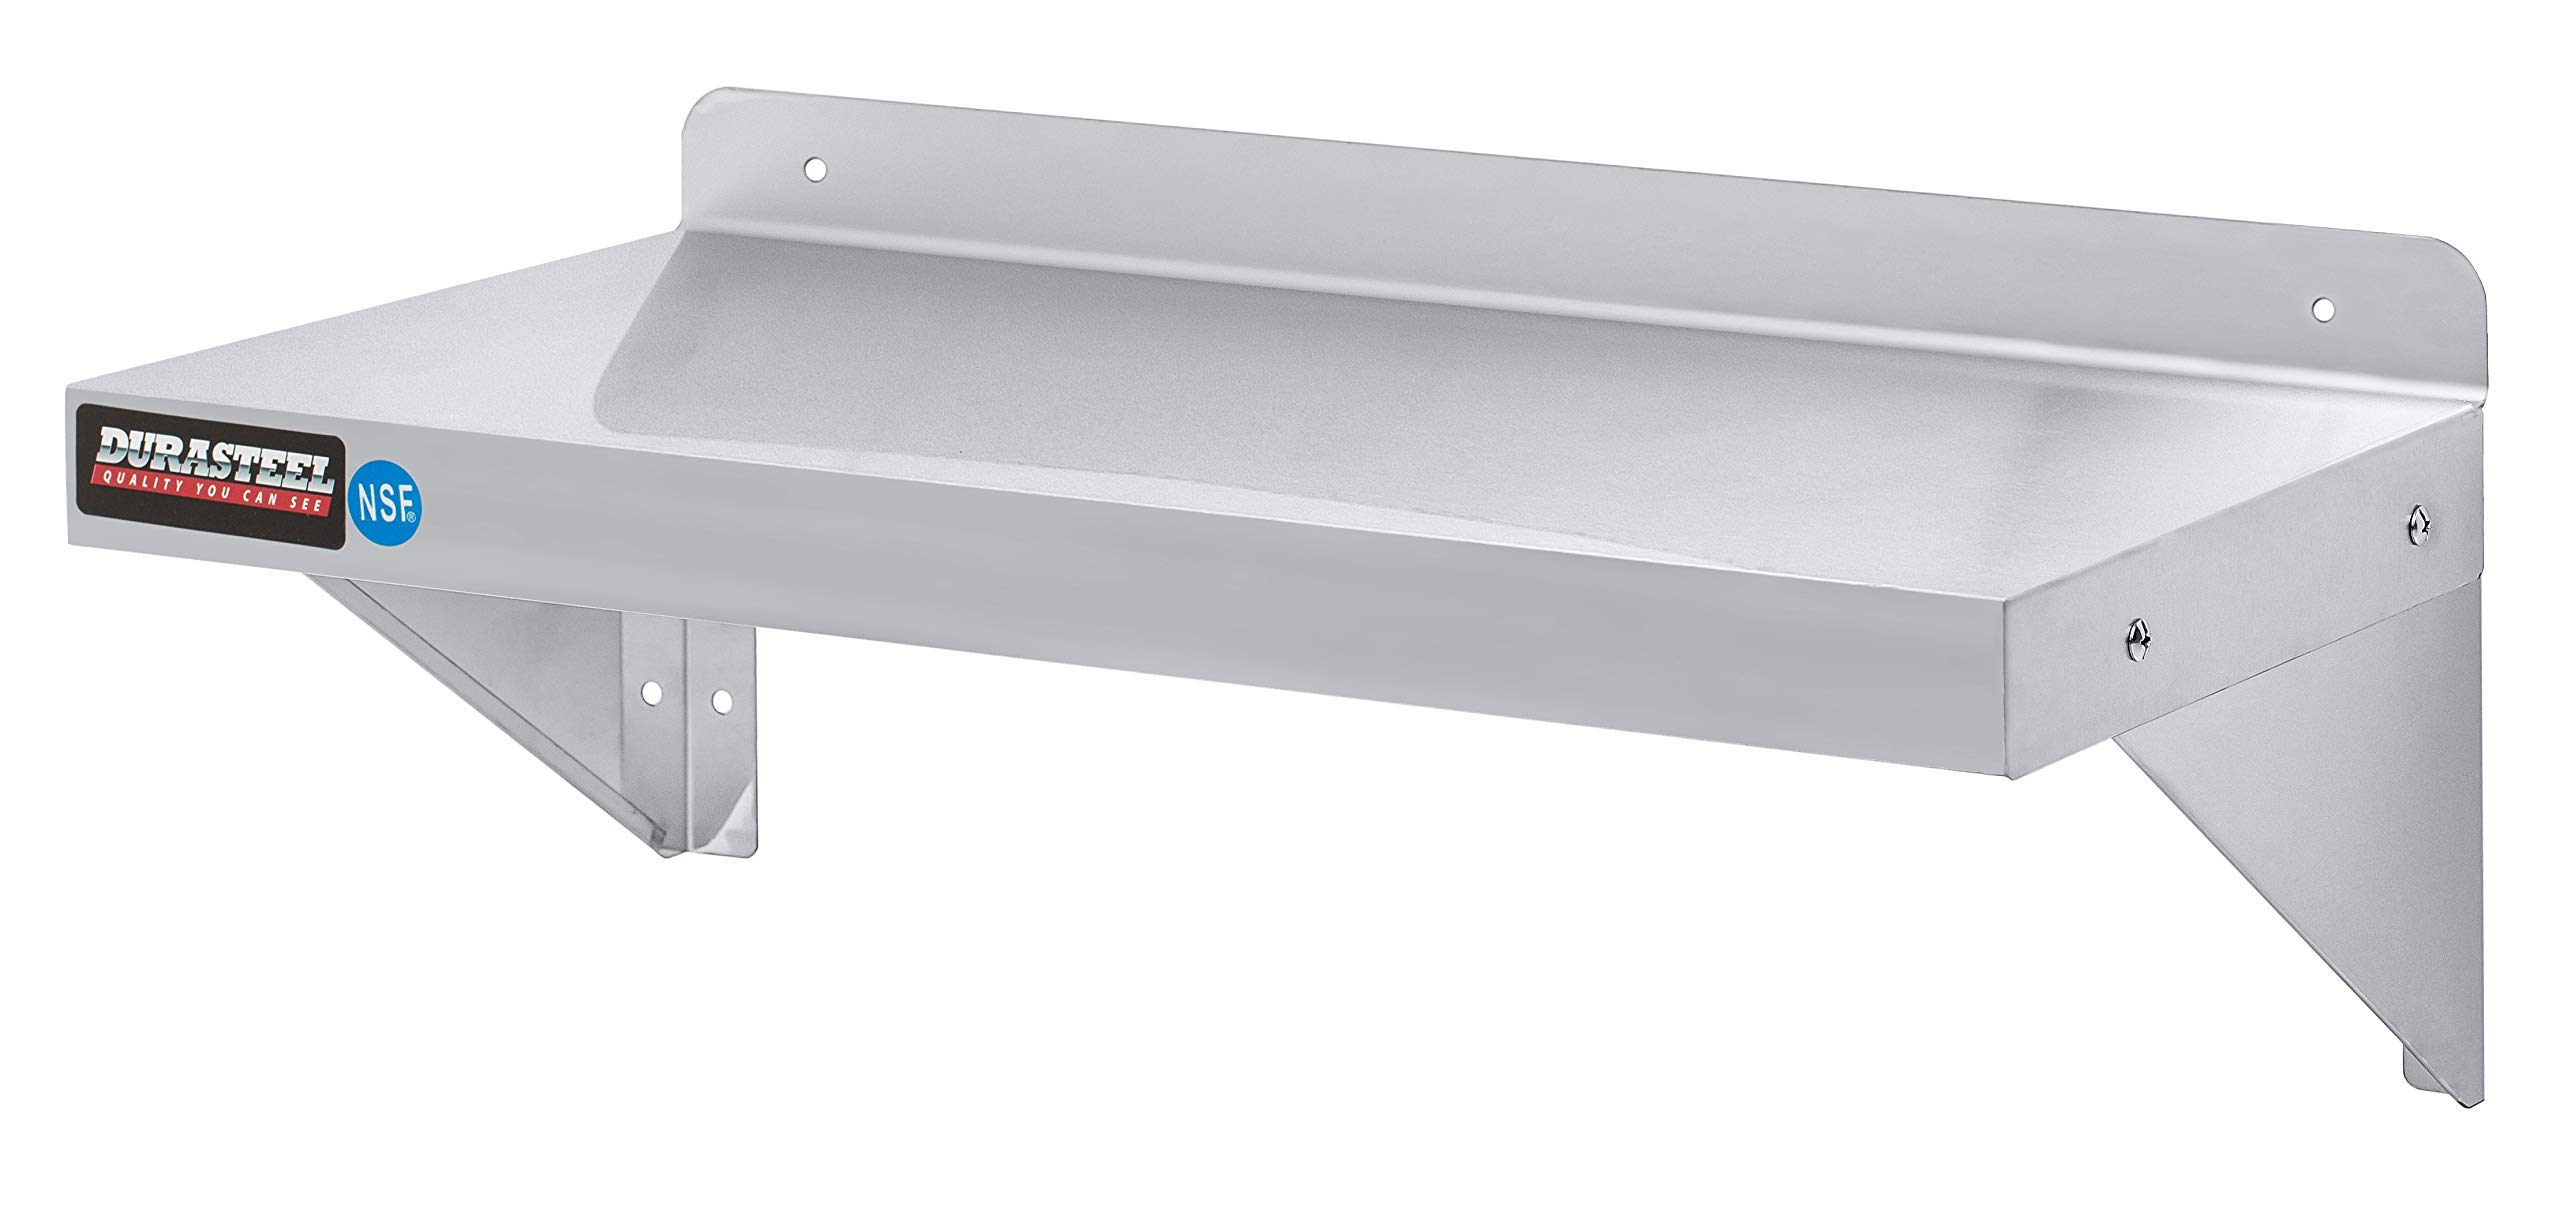 DuraSteel Stainless Steel Wall Shelf 24'' Wide x 12'' Deep Commercial Grade - NSF Approved - Industrial Appliance Equipment (Restaurant, Bar, Home, Kitchen, Laundry, Garage and Utility Room)